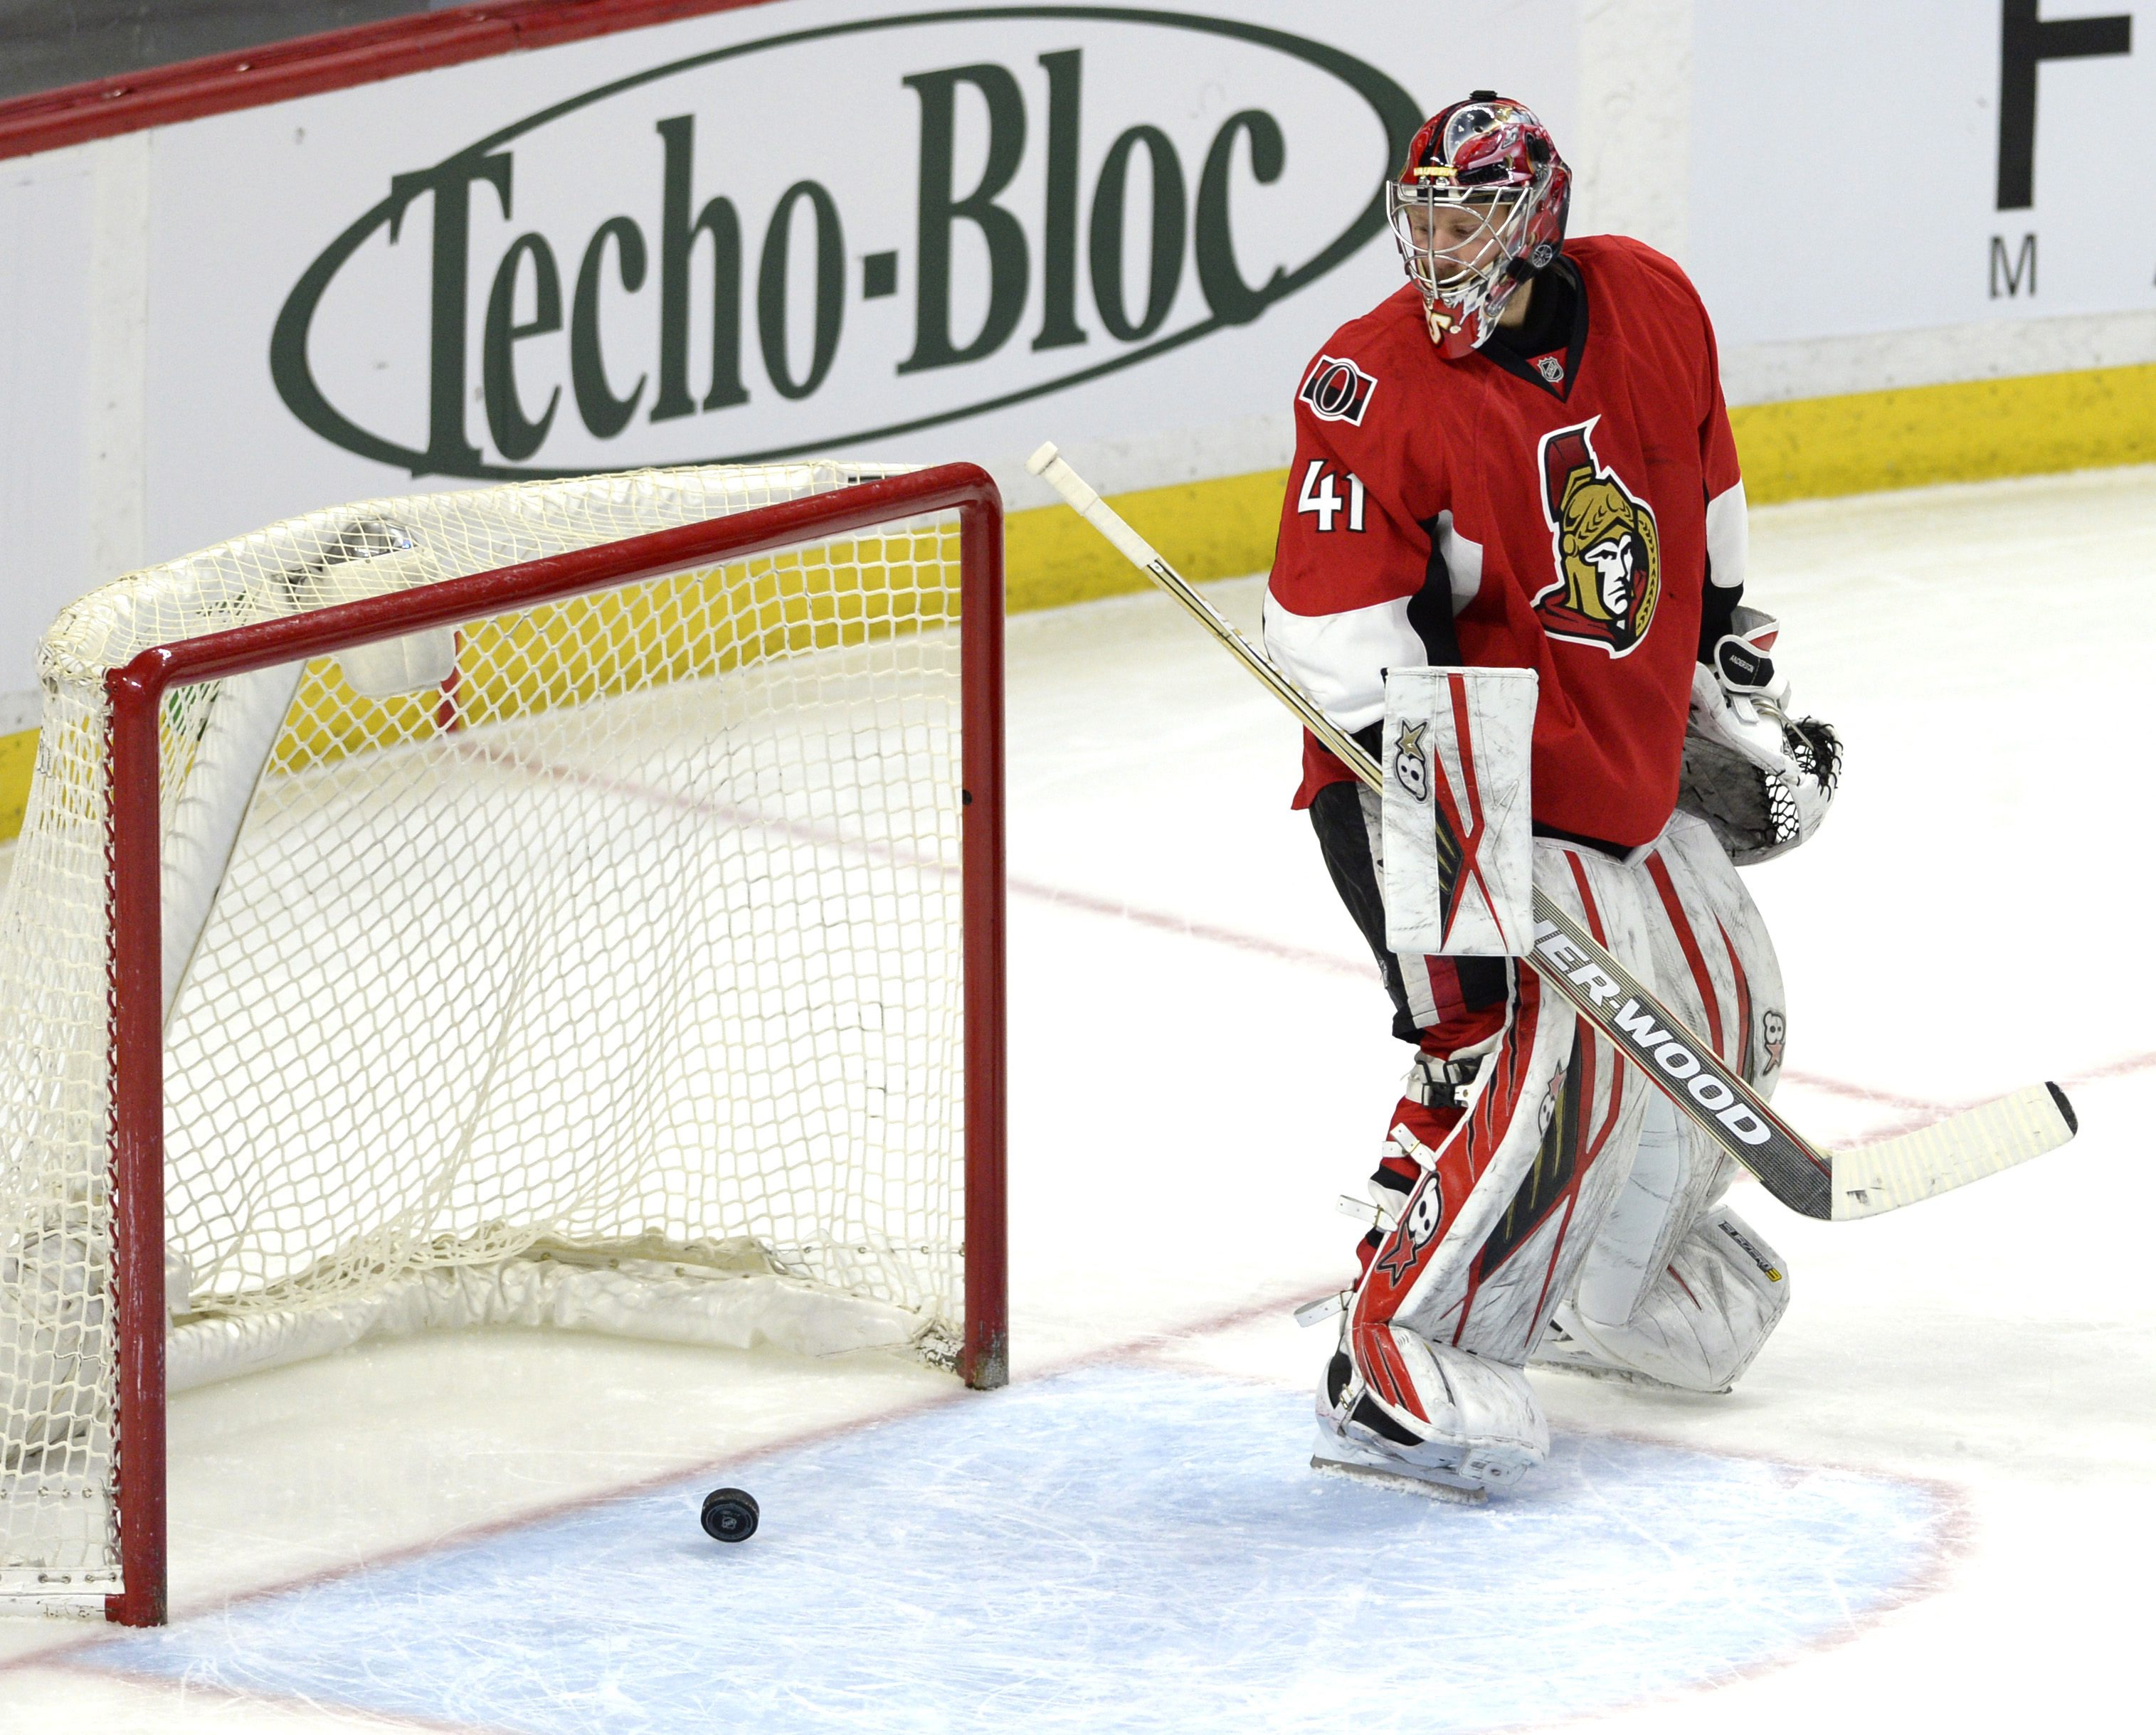 Ottawa Senators goaltender Craig Anderson (41) looks back at the puck after a goal by St. Louis Blues' Vladimir Tarasenko, not shown, during the second period of an NHL hockey game, Tuesday, March 1, 2016 in Ottawa, Ontario.  (Justin Tang/The Canadian Pre